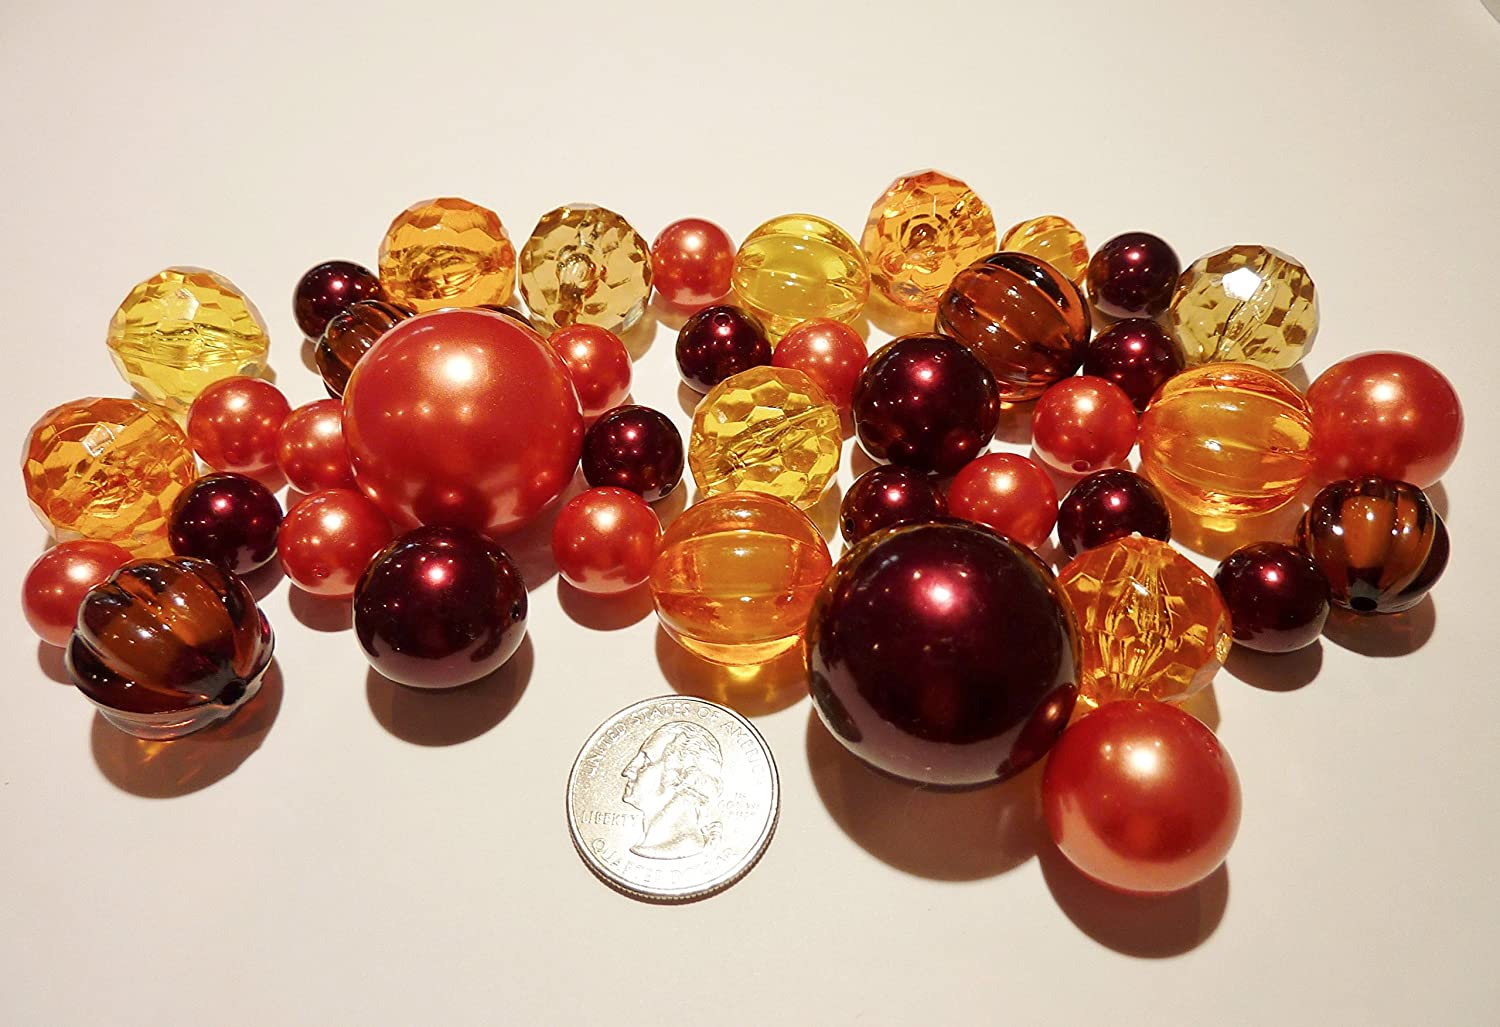 Amazon fallthanksgiving jumbo assorted sizes orange pearls amazon fallthanksgiving jumbo assorted sizes orange pearls burgundy red wine pearls pumpkin gems vase fillers value pack for centerpieces reviewsmspy